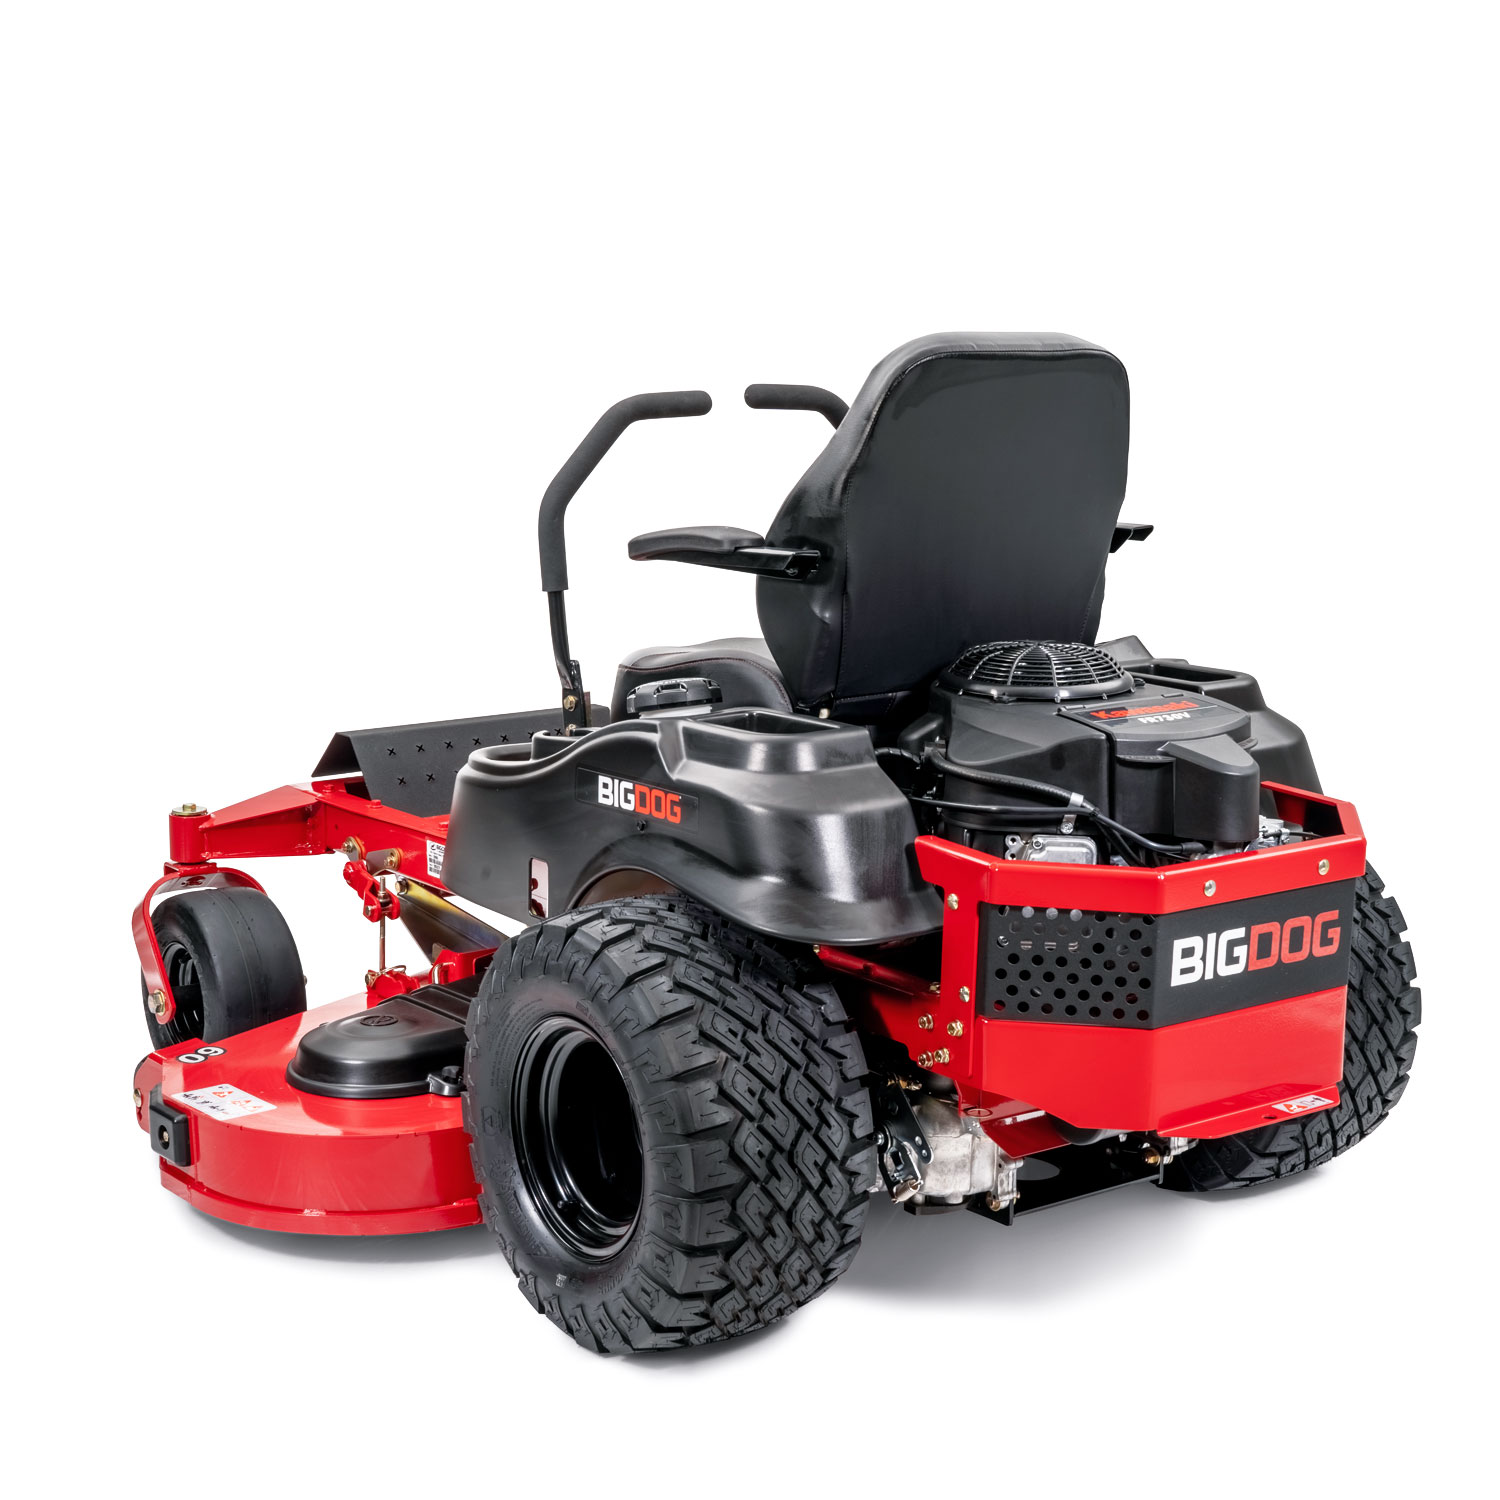 Image of rear three quarters of red mower showing the trim side of the deck